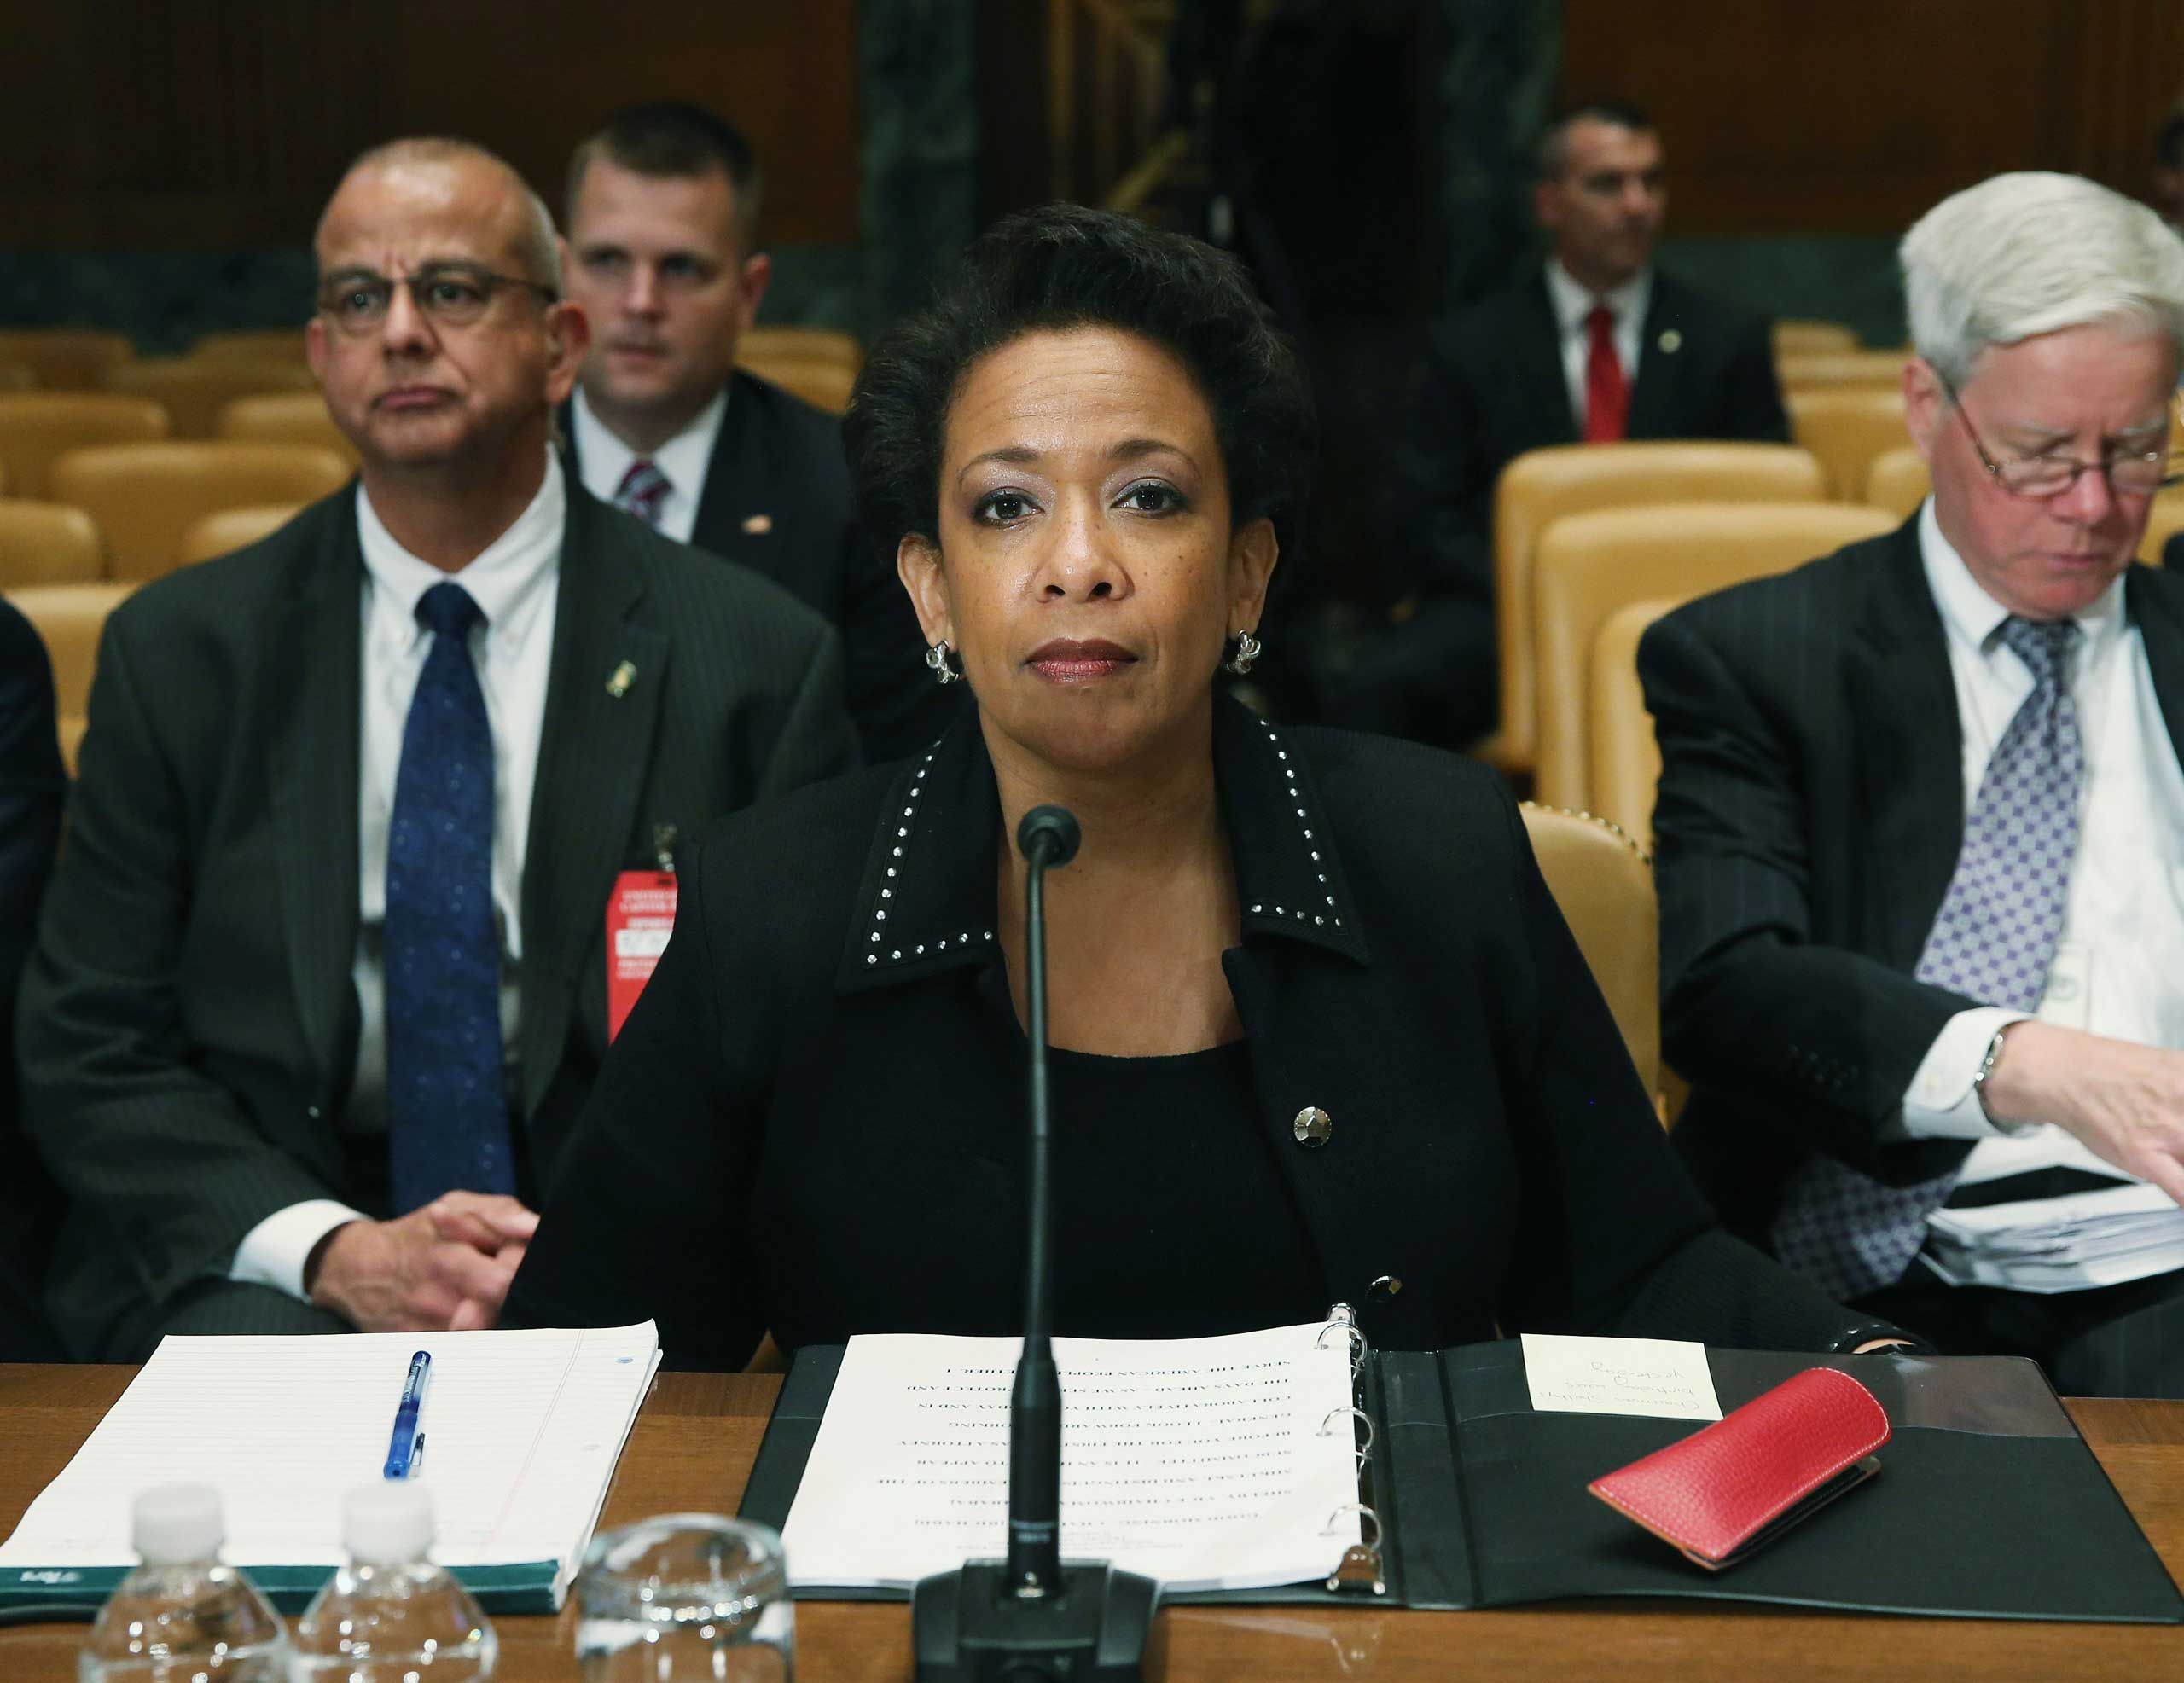 U.S. Attorney General Loretta Lynch appears before the Senate Appropriations Committee on Capitol Hill in Washington on May 7, 2015.